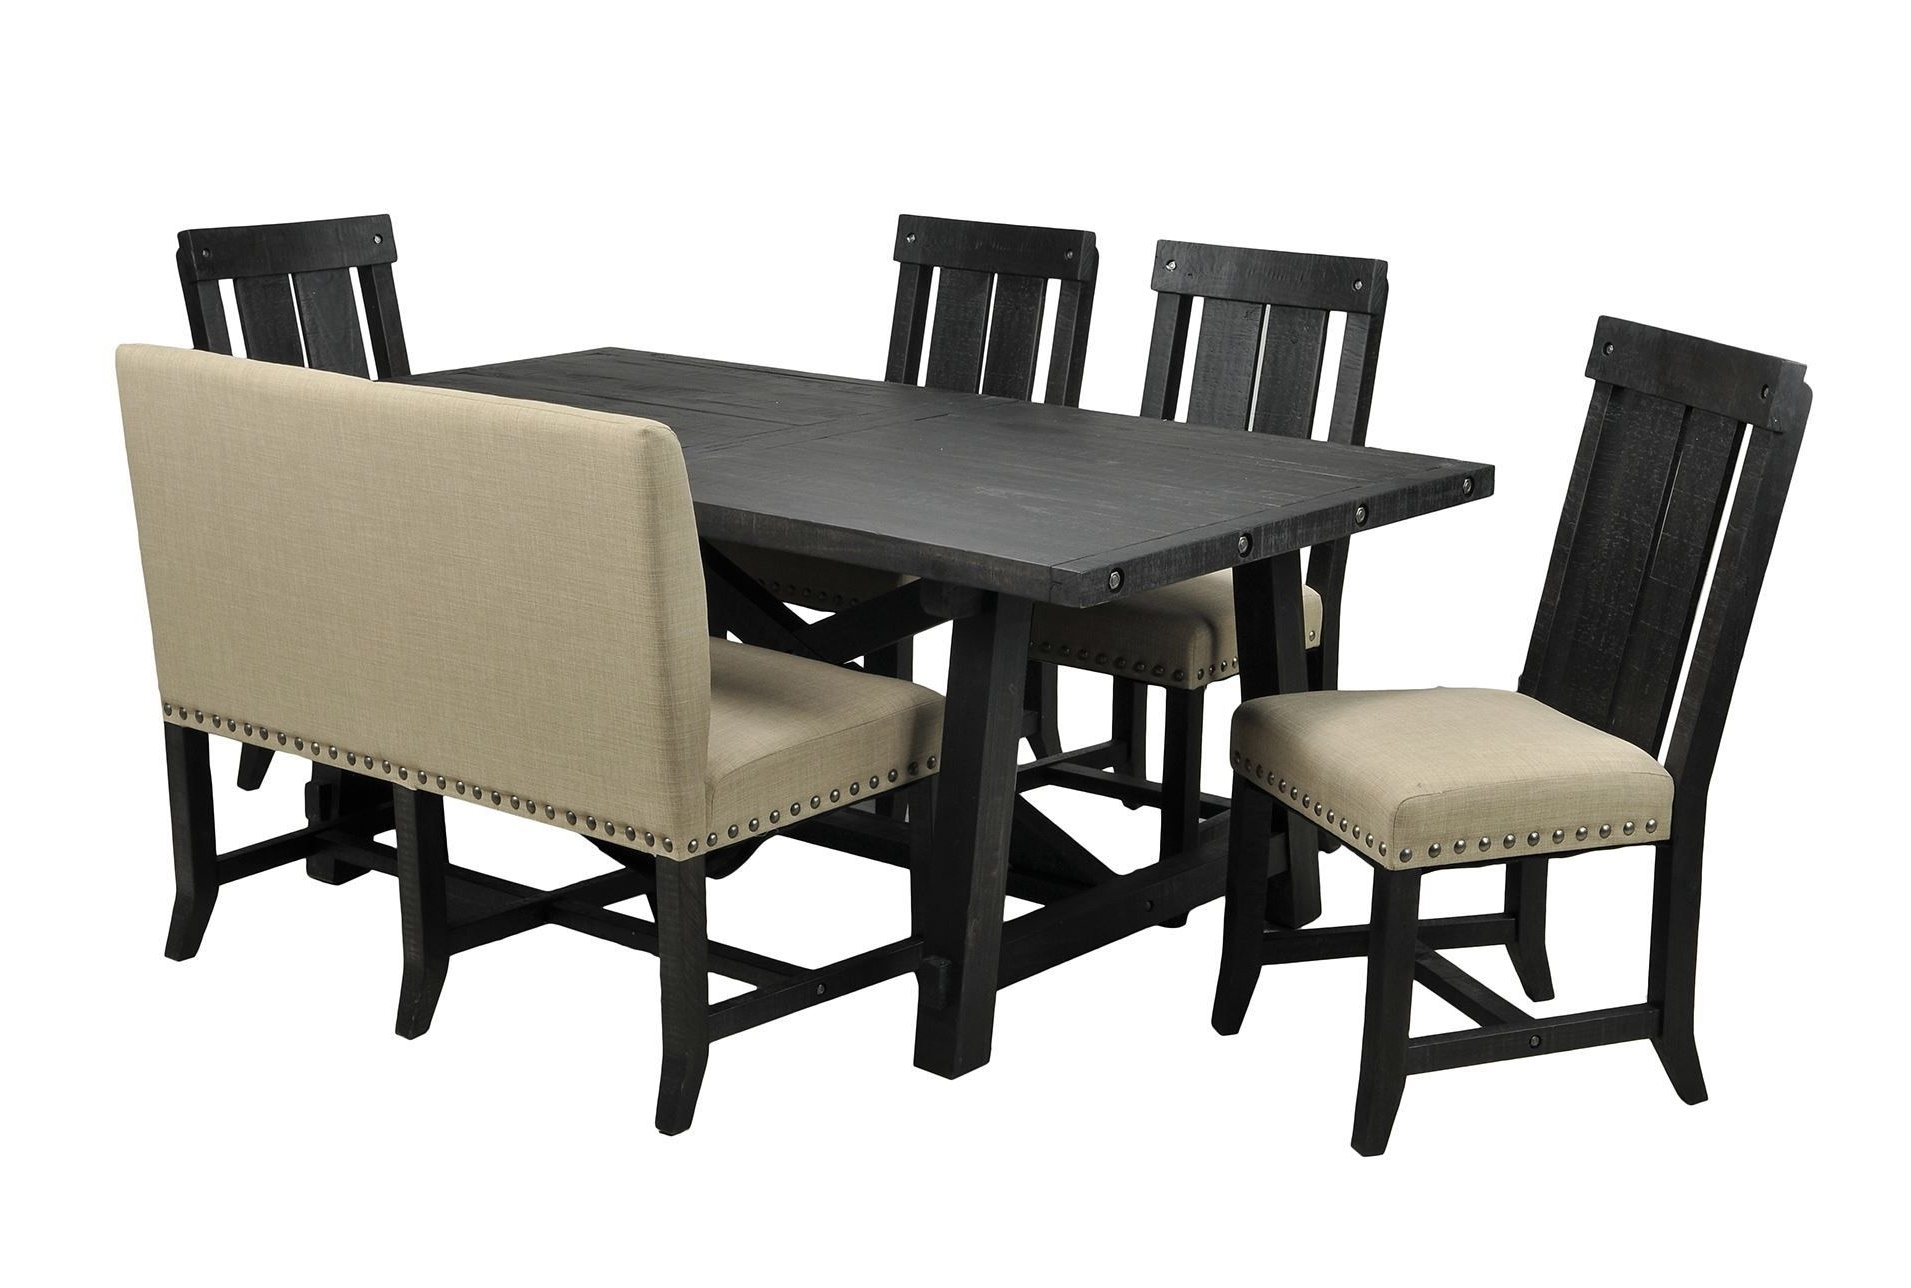 Latest Jaxon 6 Piece Rectangle Dining Set W/bench & Wood Chairs, Café Regarding Jaxon 7 Piece Rectangle Dining Sets With Wood Chairs (View 2 of 25)